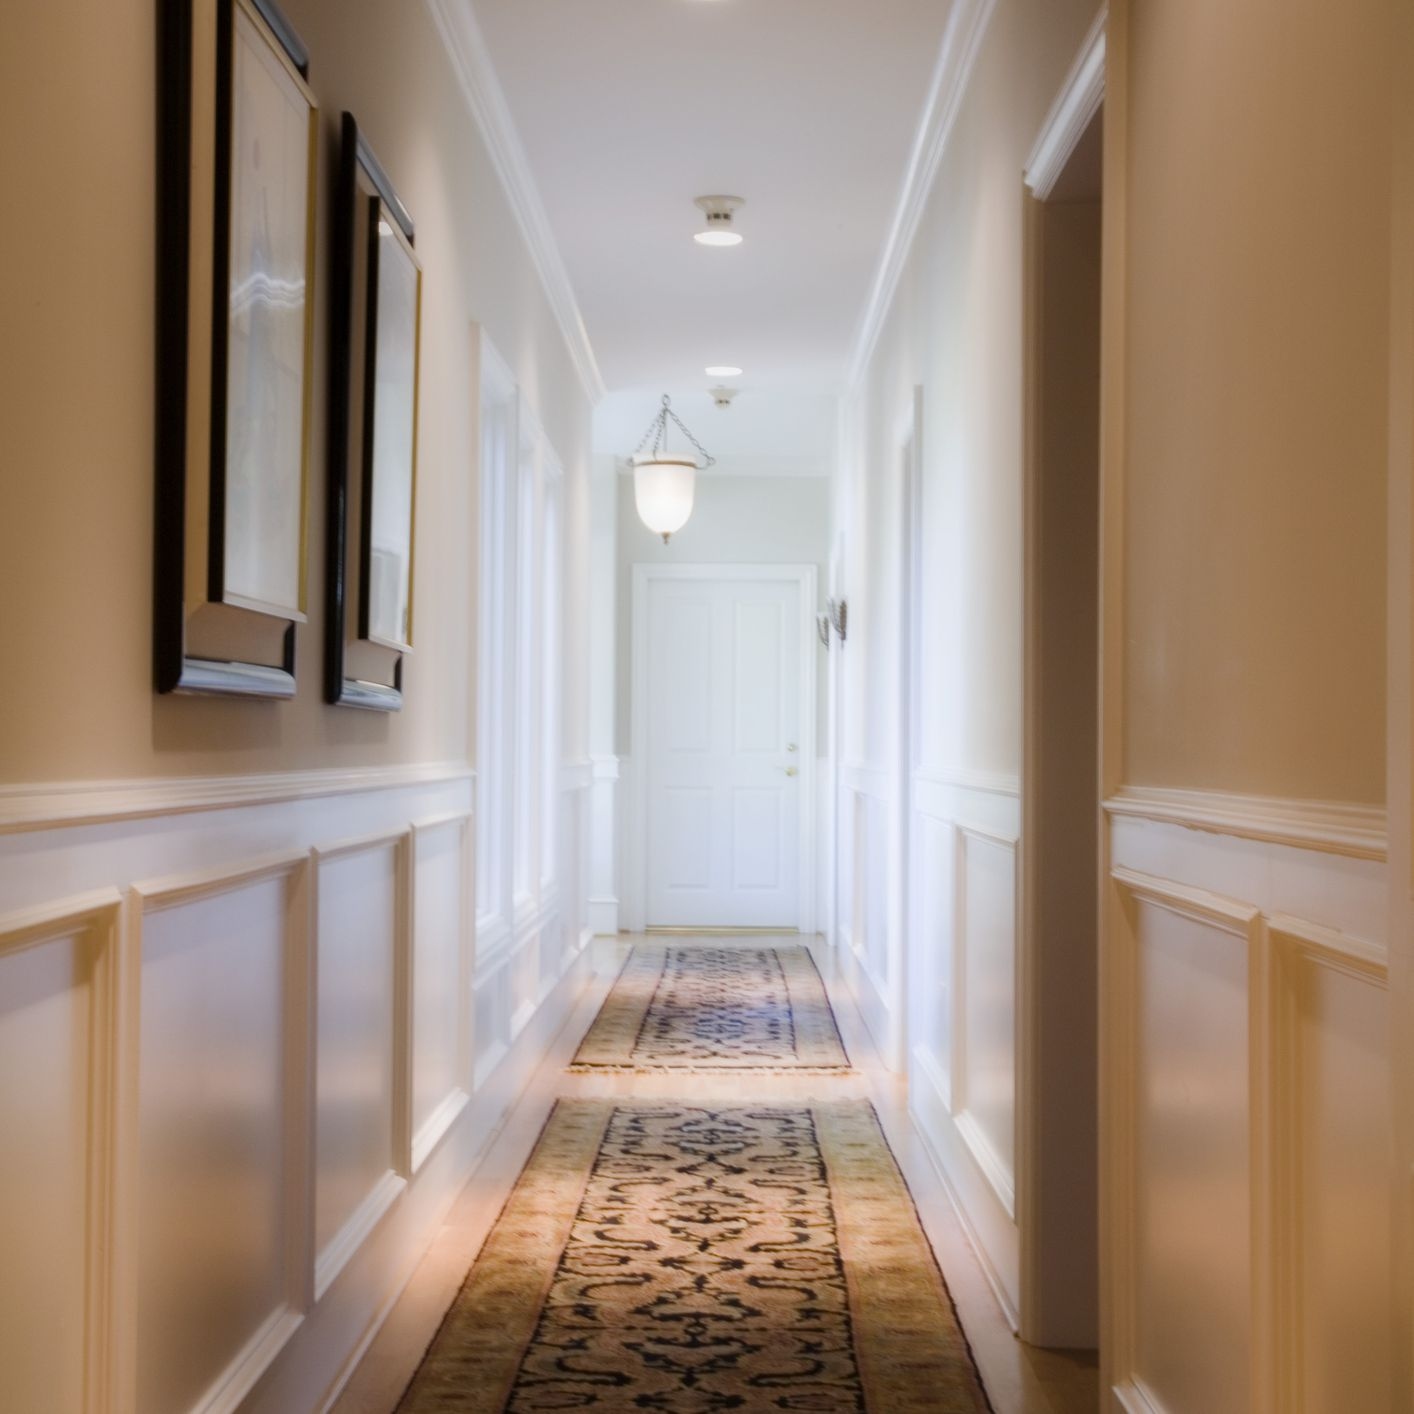 a long hallway with art and runners on the floor with lighting